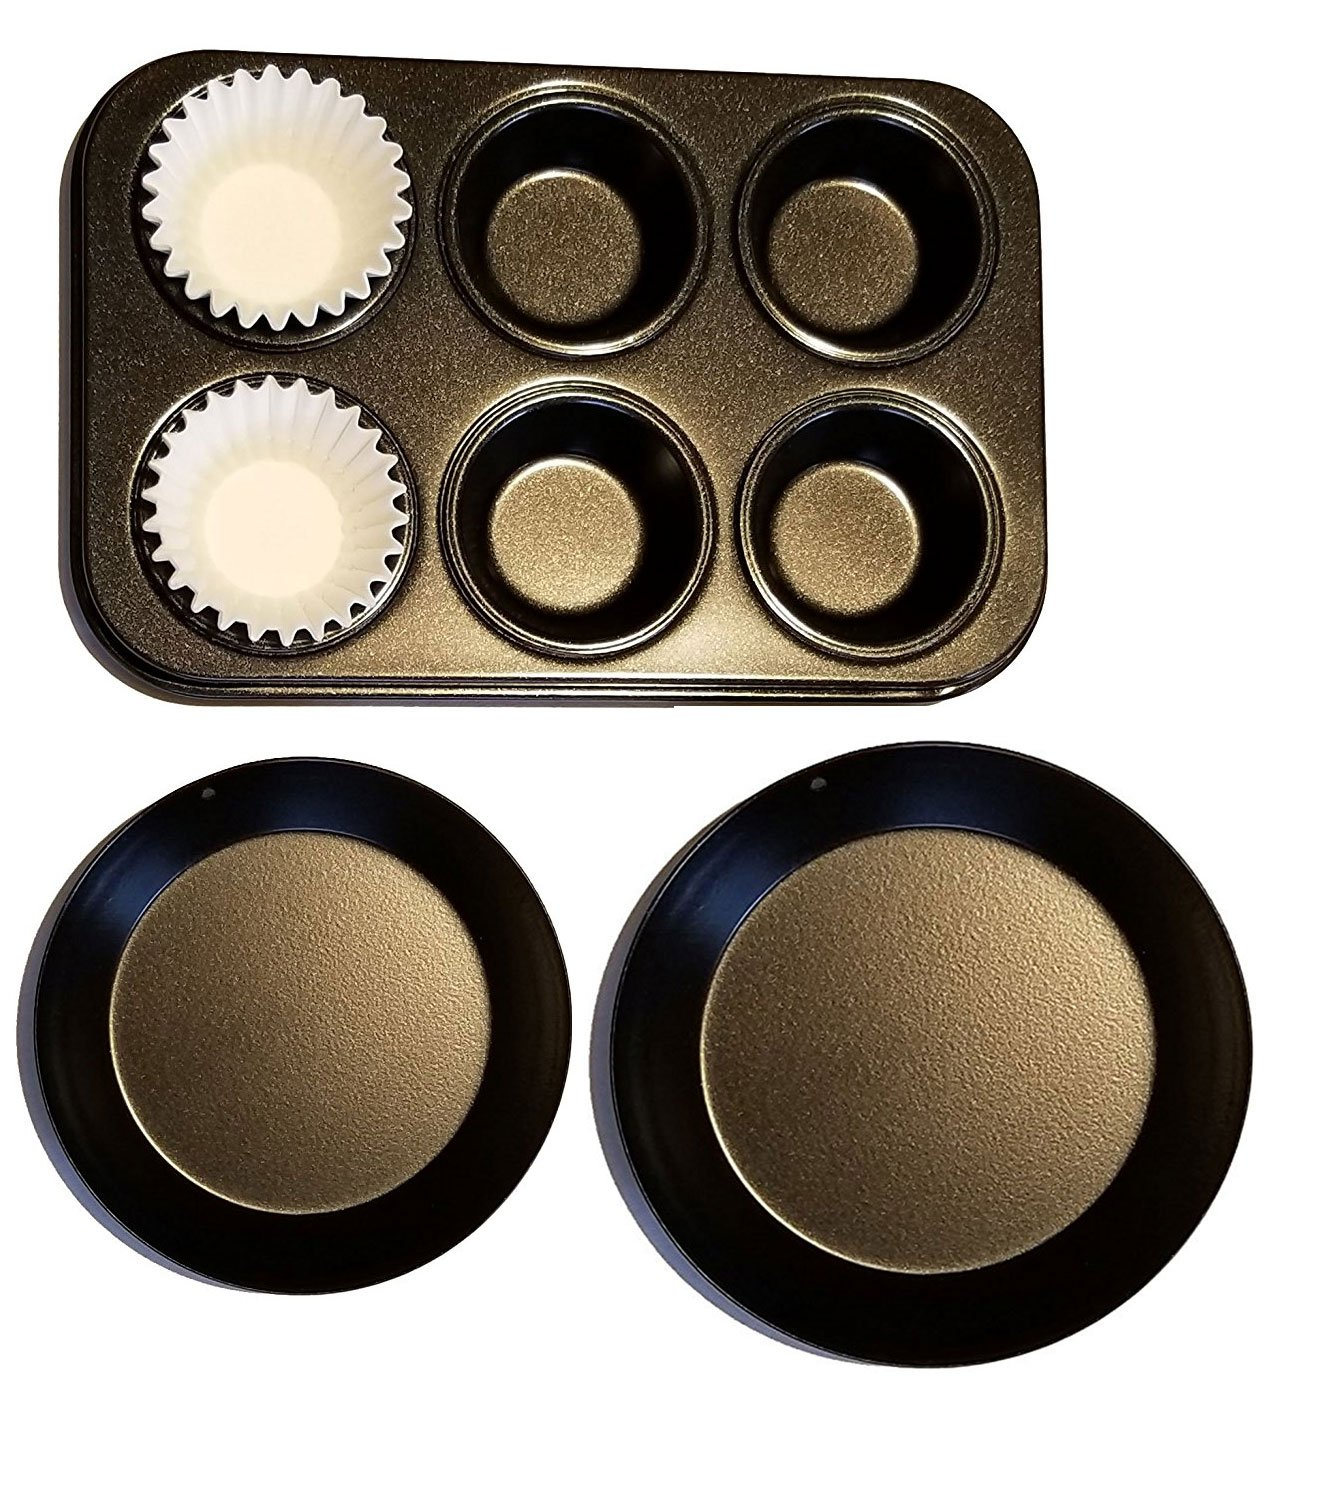 Easy Bake Oven Extra Pan Set of 3 Replacements Non Stick Pans for Toy Ovens cupcake pan and 25 Papers